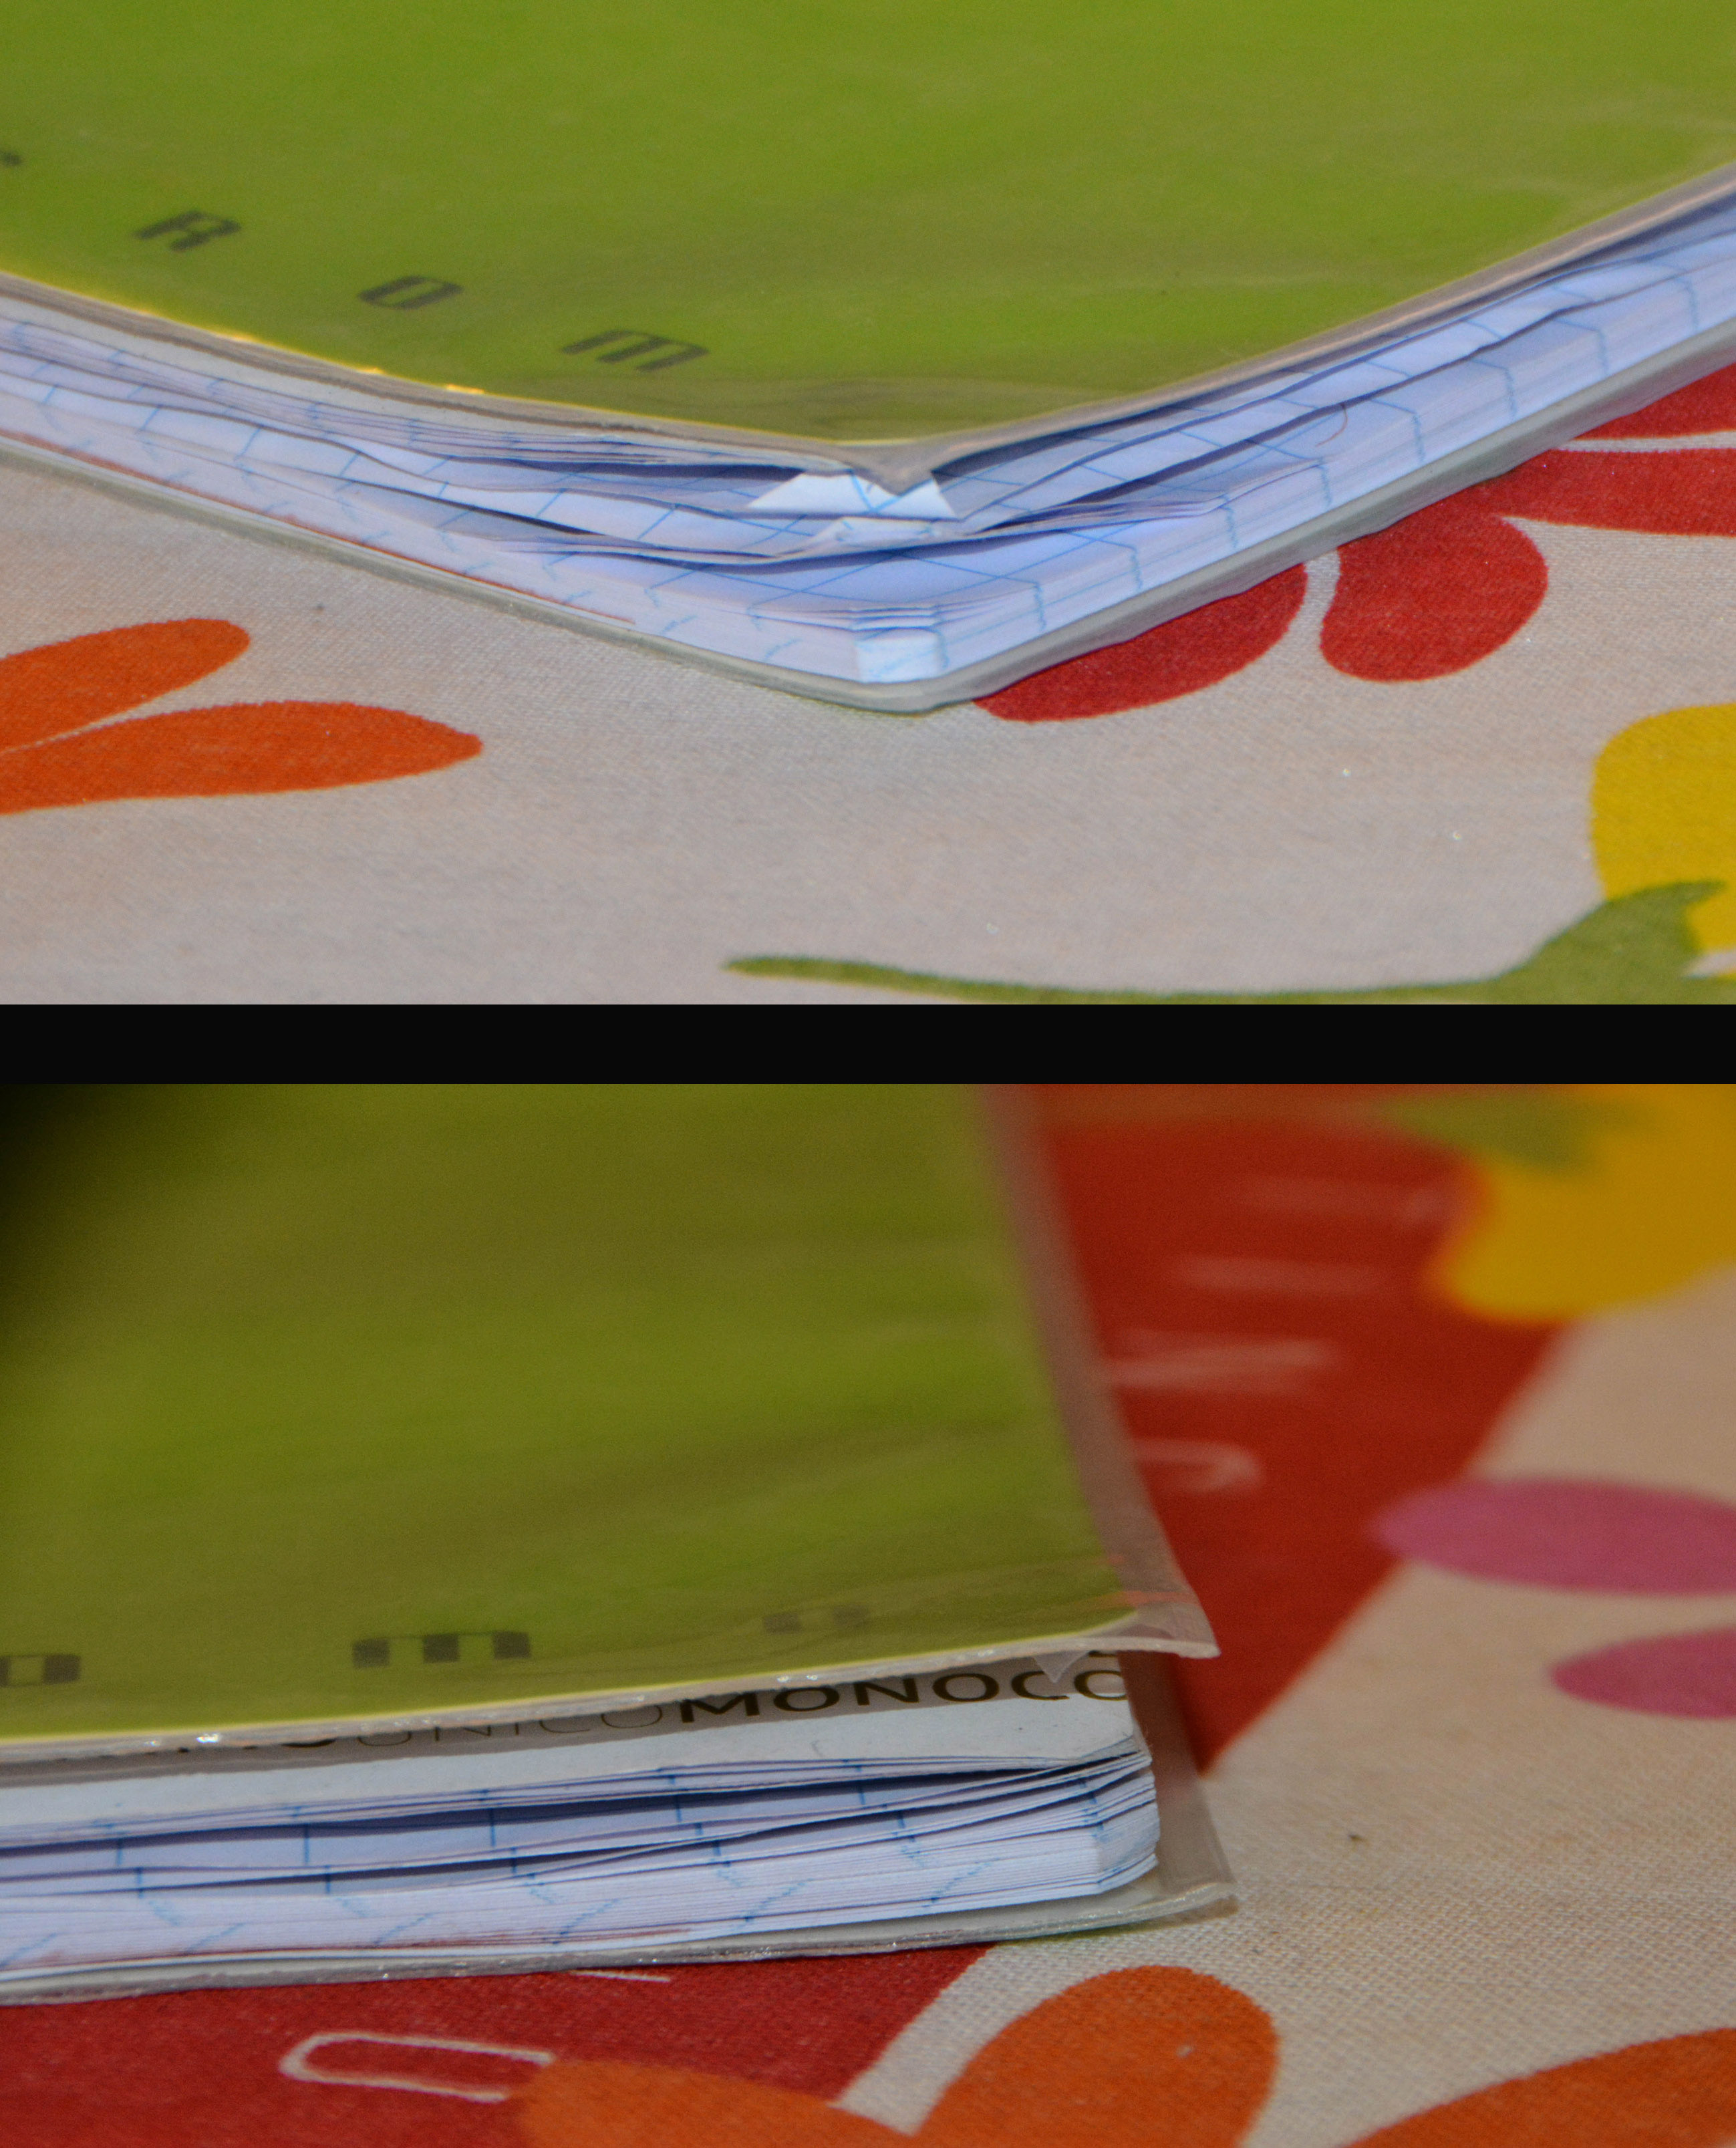 How to get rid of unpleasant dog-ears on exercise books